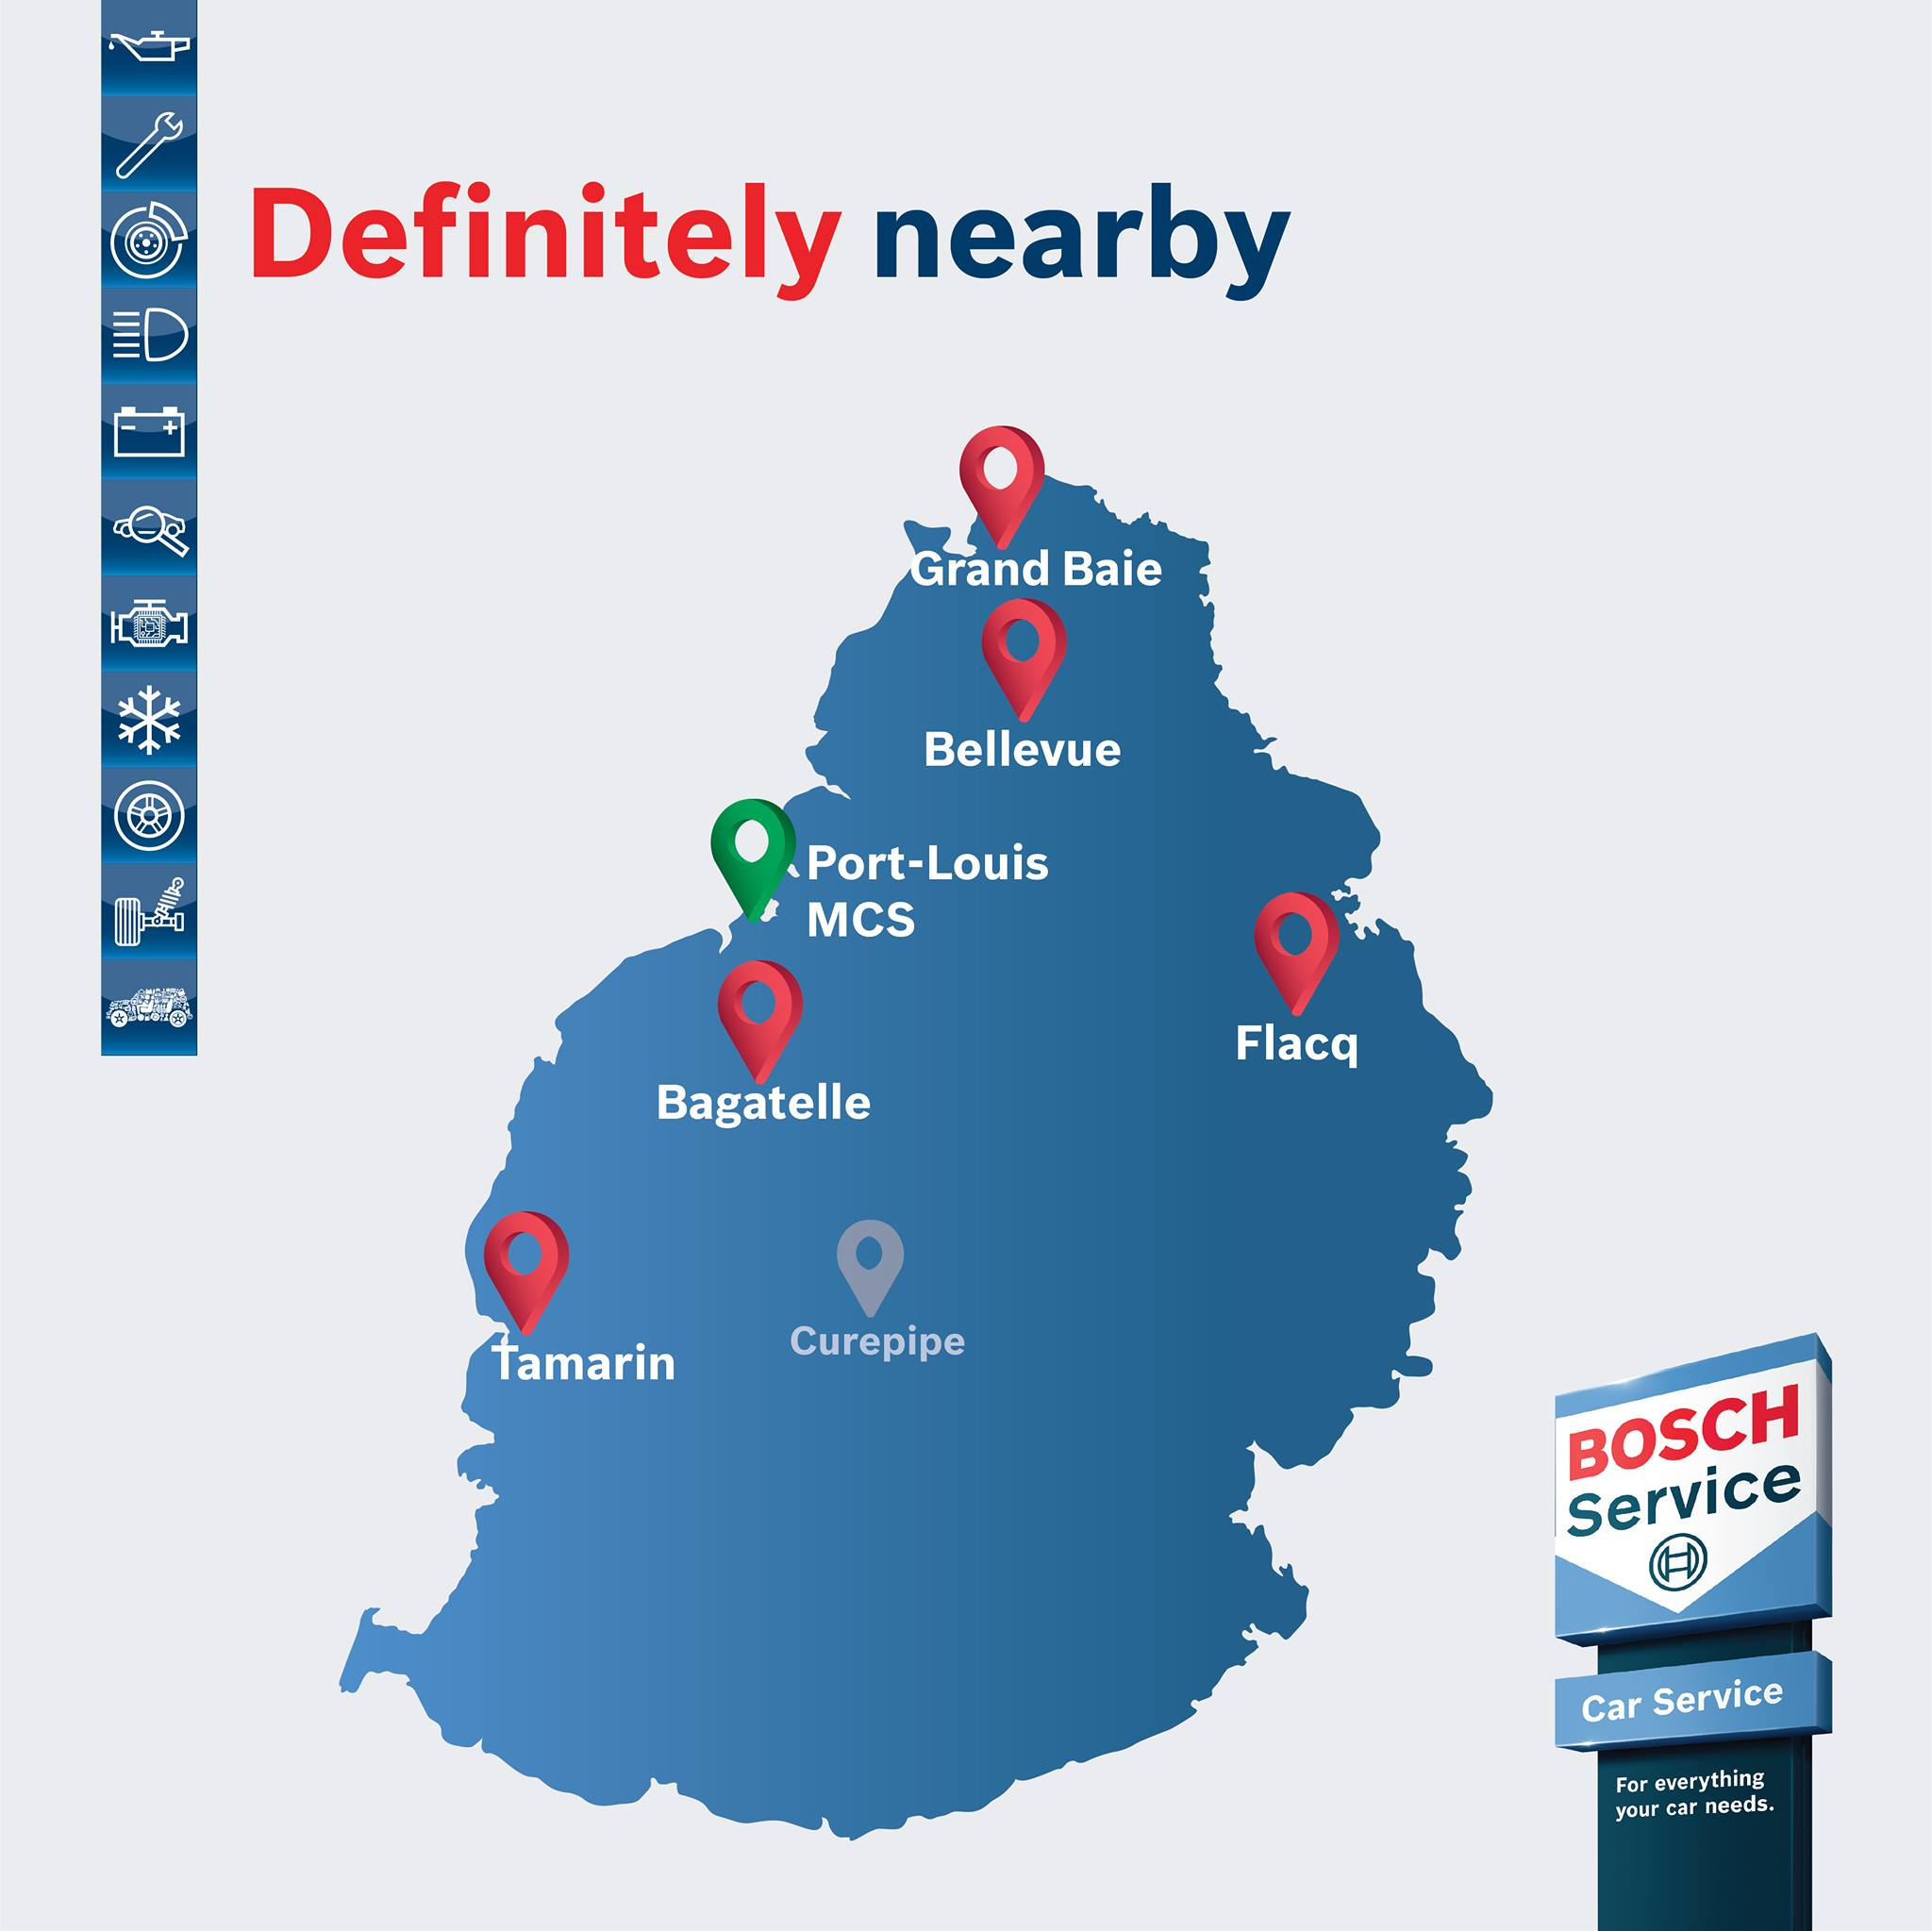 BOSCH MAURITIUS : Wherever you are, we are nearby.